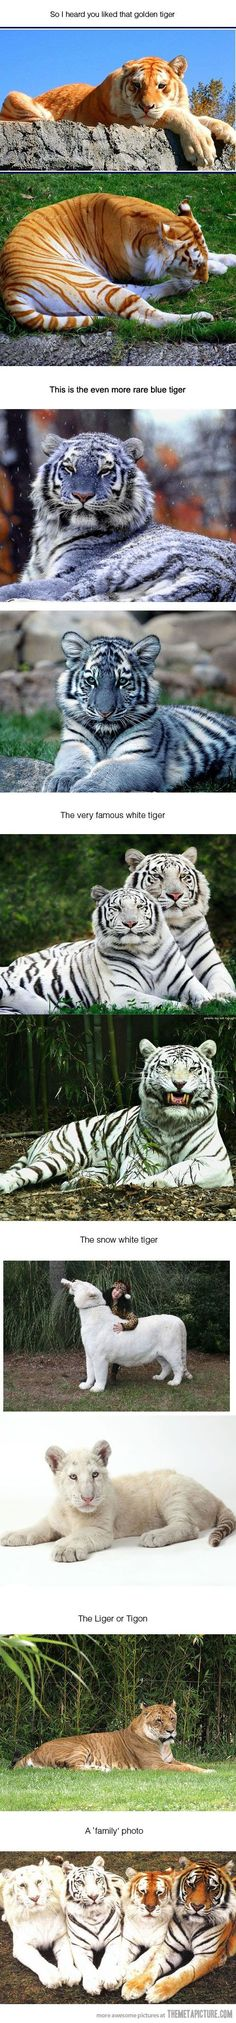 Beautiful, but the only way to produce a white tiger is through inbreeding. Very sad as not all are born healthy.